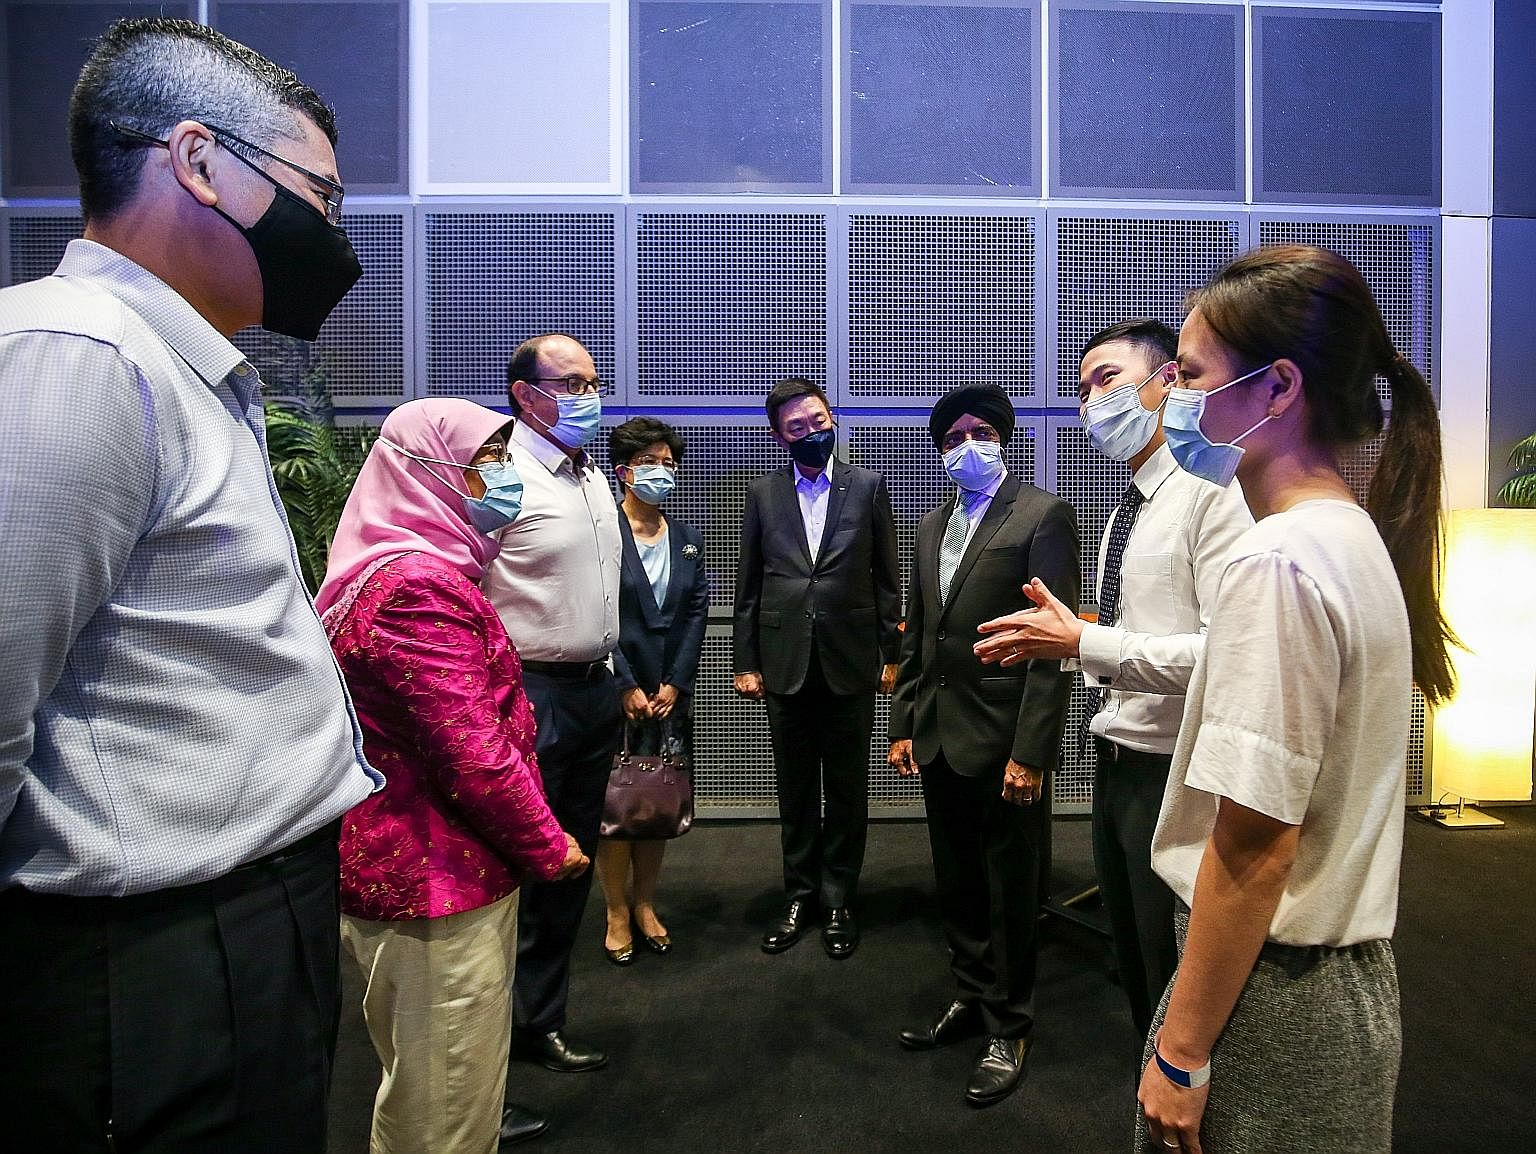 President Halimah Yacob and Minister for Communications and Information S. Iswaran yesterday at the Infocomm Media Development Authority's Partners' Appreciation event to recognise those who contributed to digital inclusion and readiness efforts here